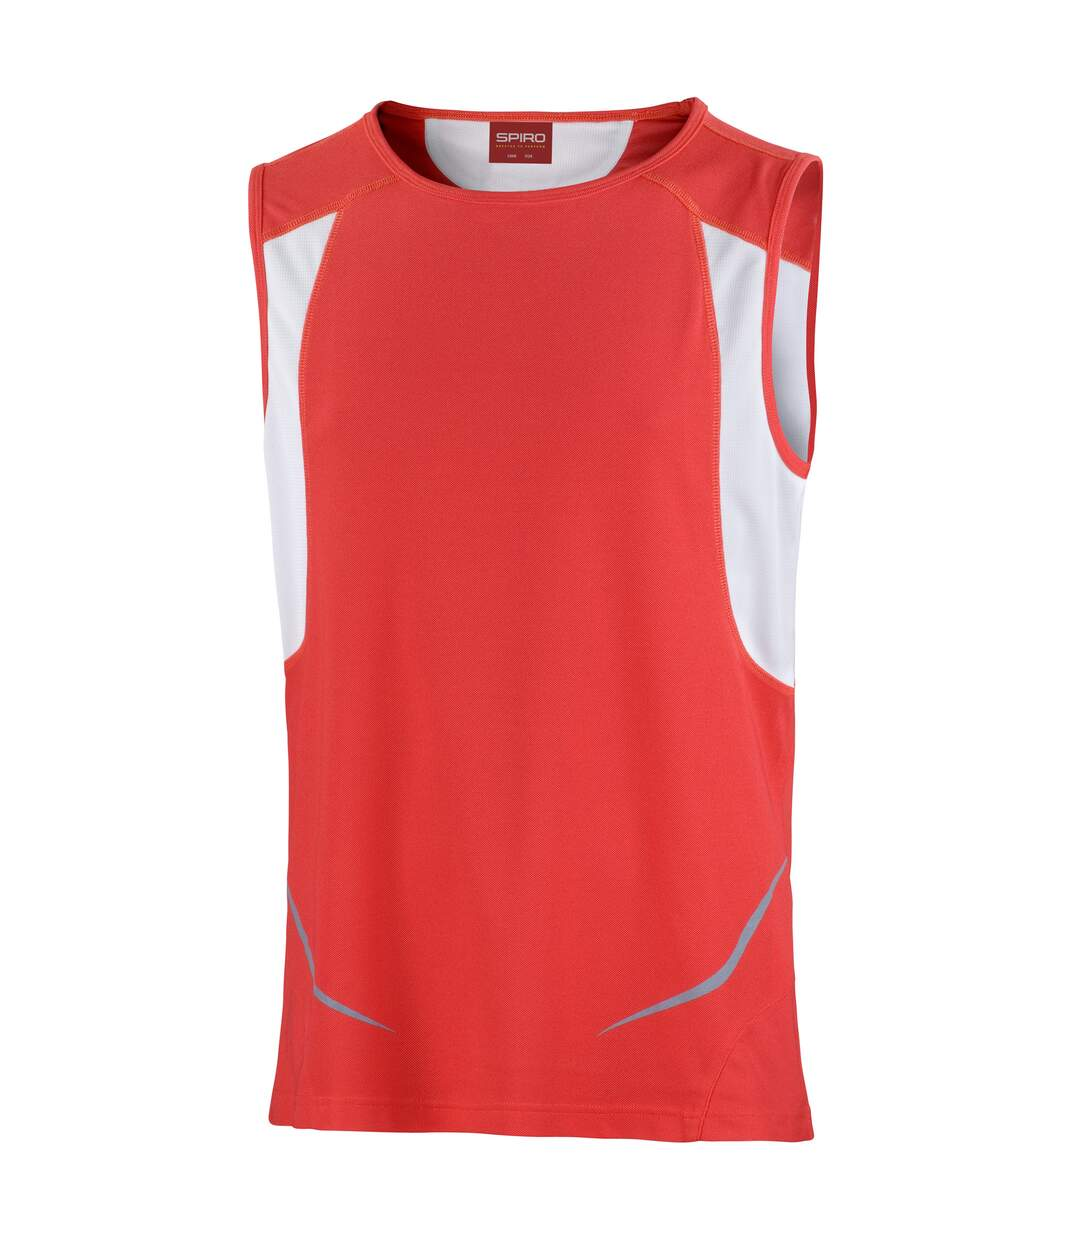 Spiro Mens Sports Athletic Vest Top (Black/Red) - UTRW1480